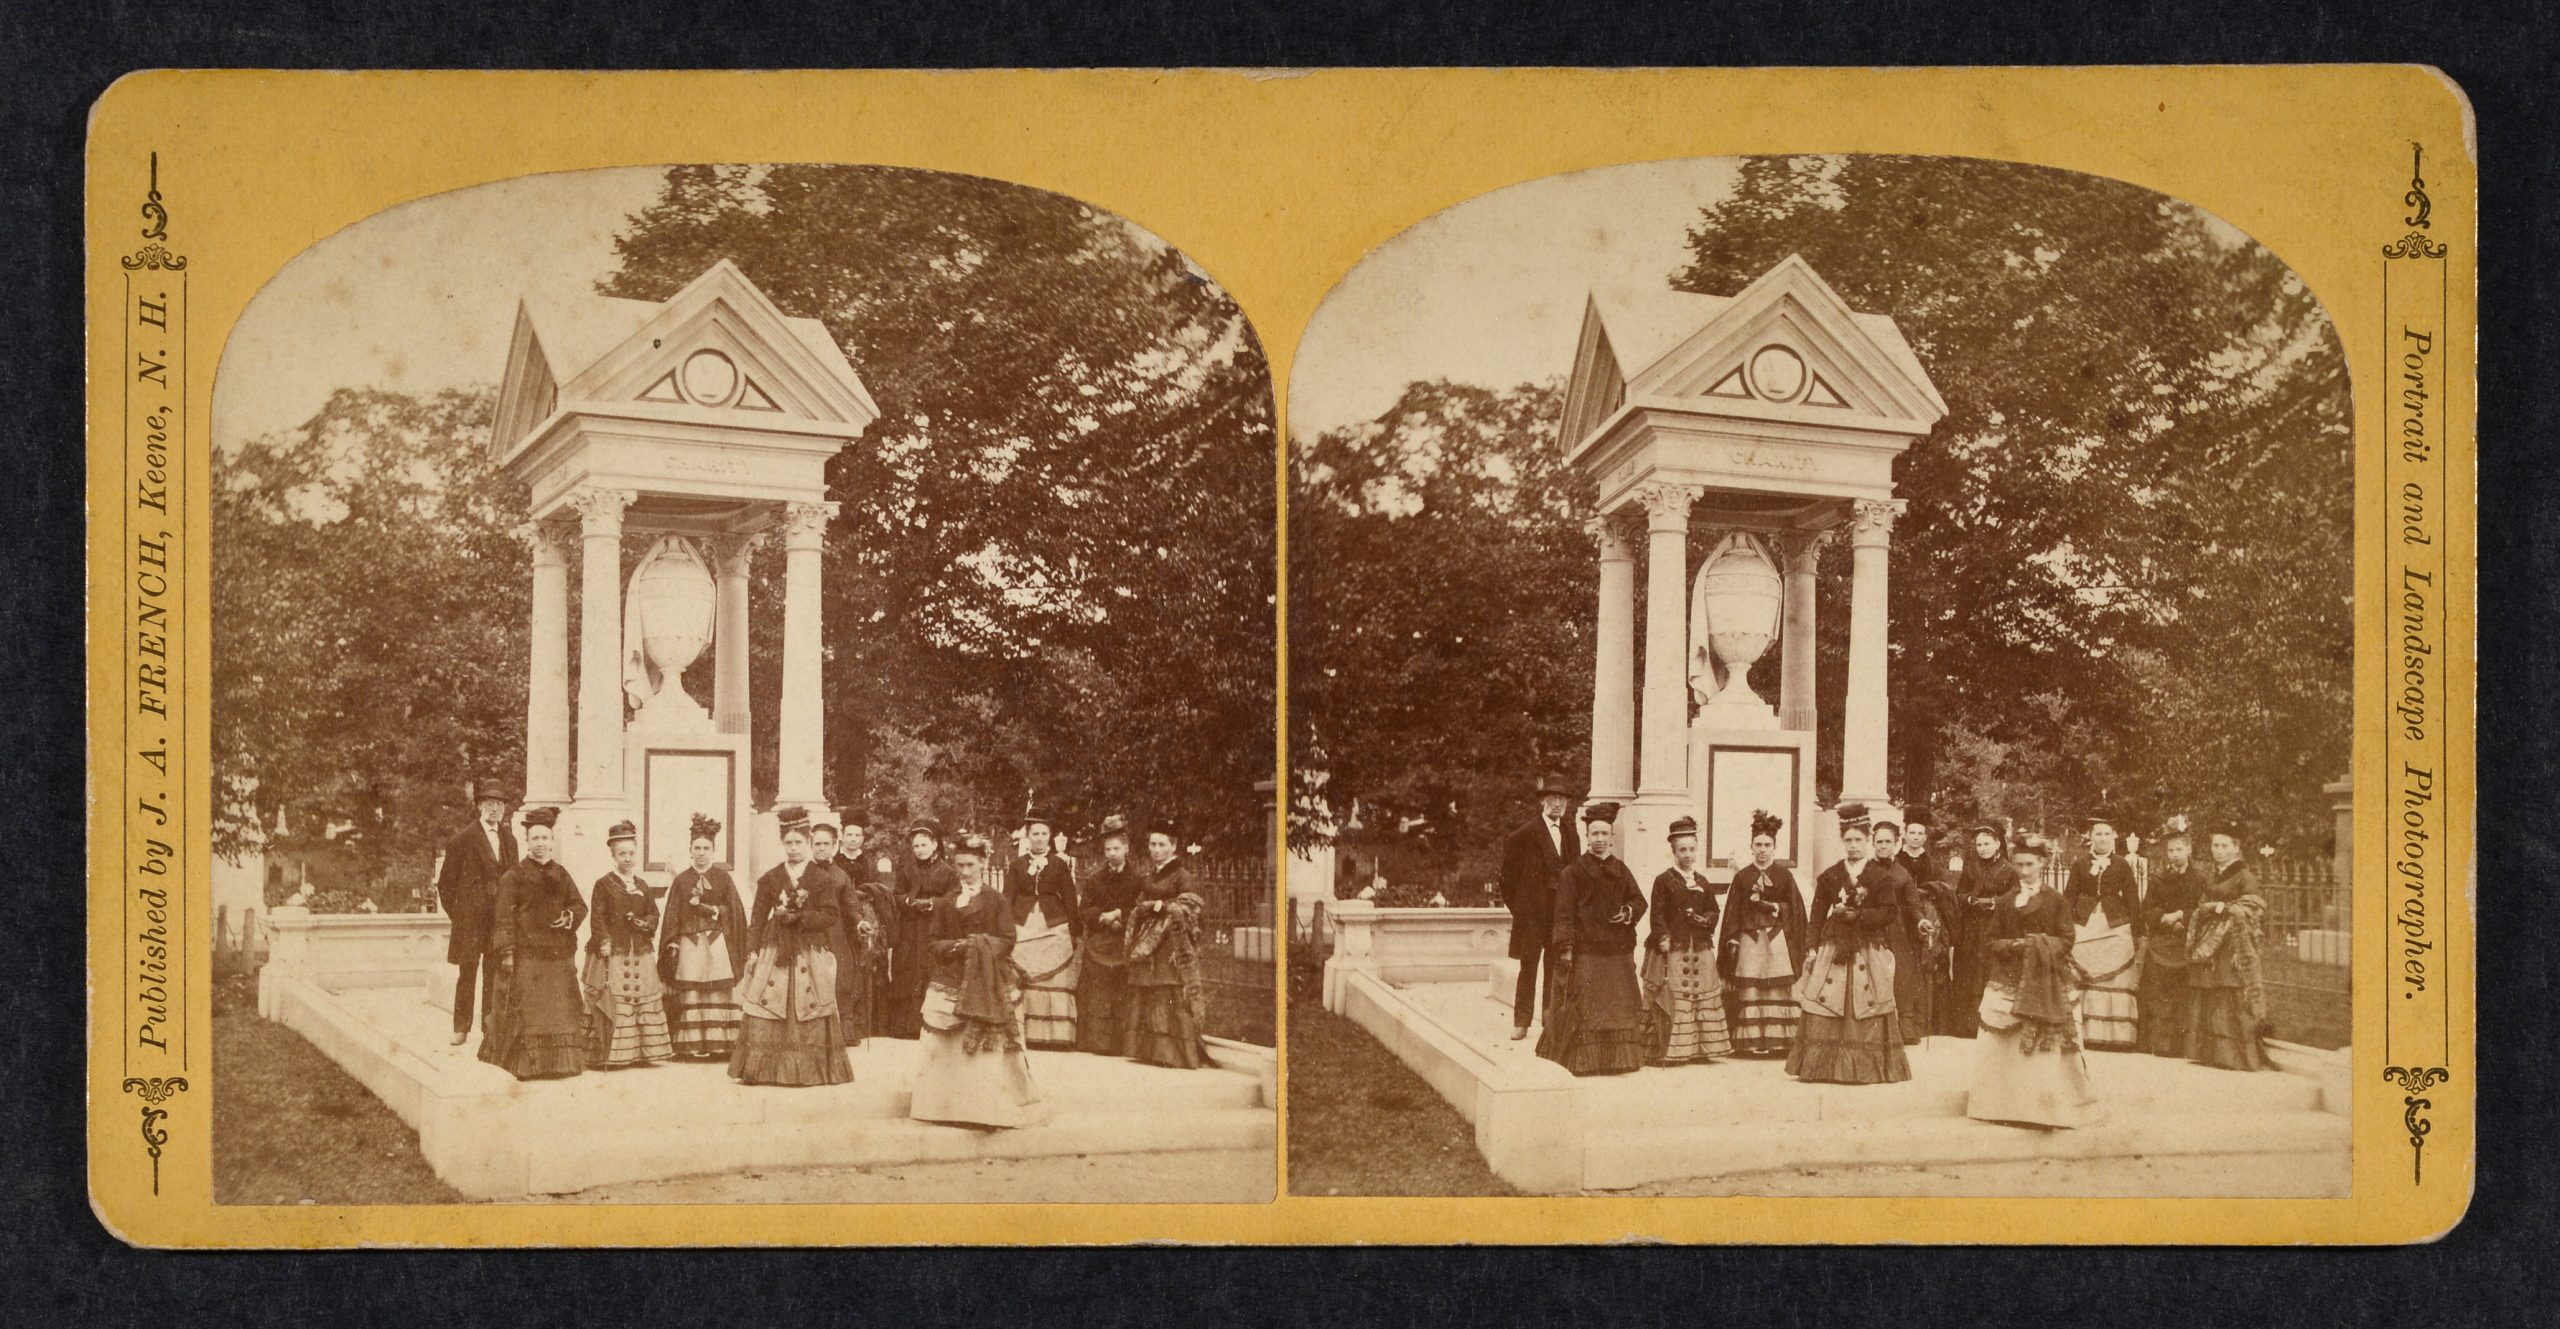 Stereoview of group of 11 women and 1 man in front of large canopy monument.